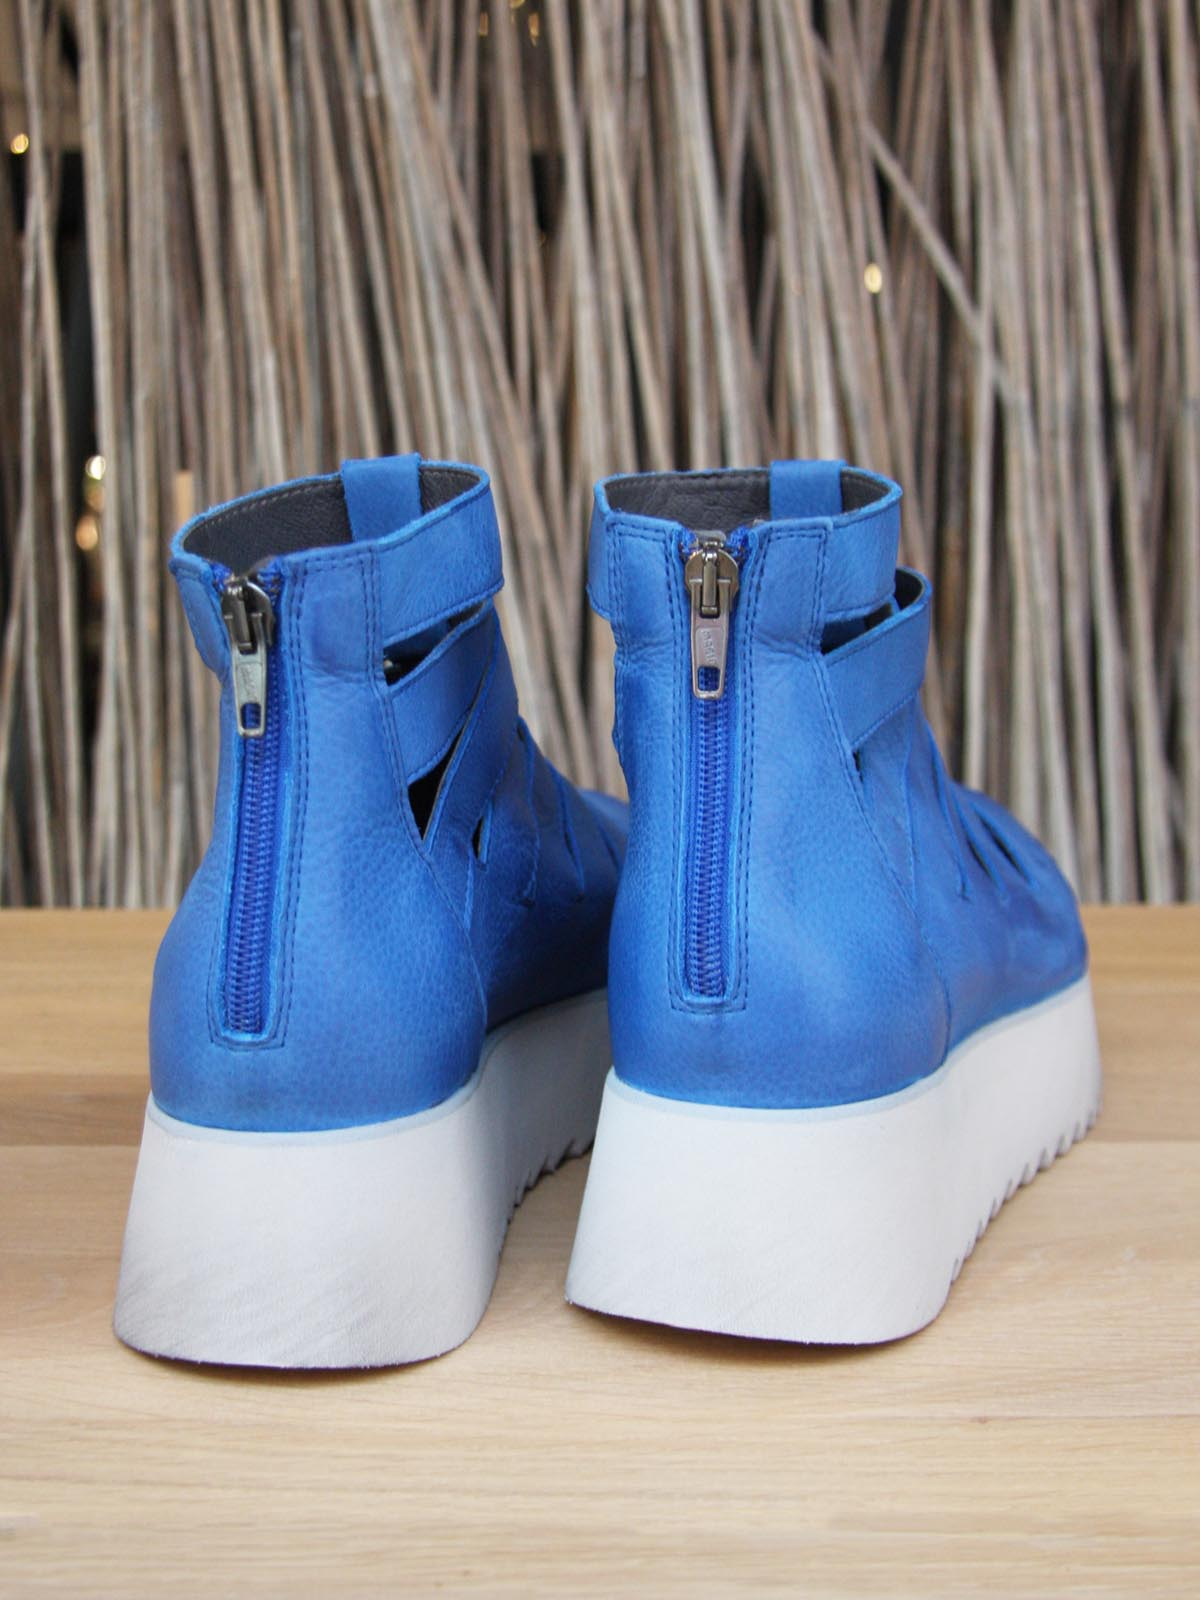 Lofina Platform Sandals - Royal Blue, Footwear, Lofina, Blue Women - Blue Women's Clothing